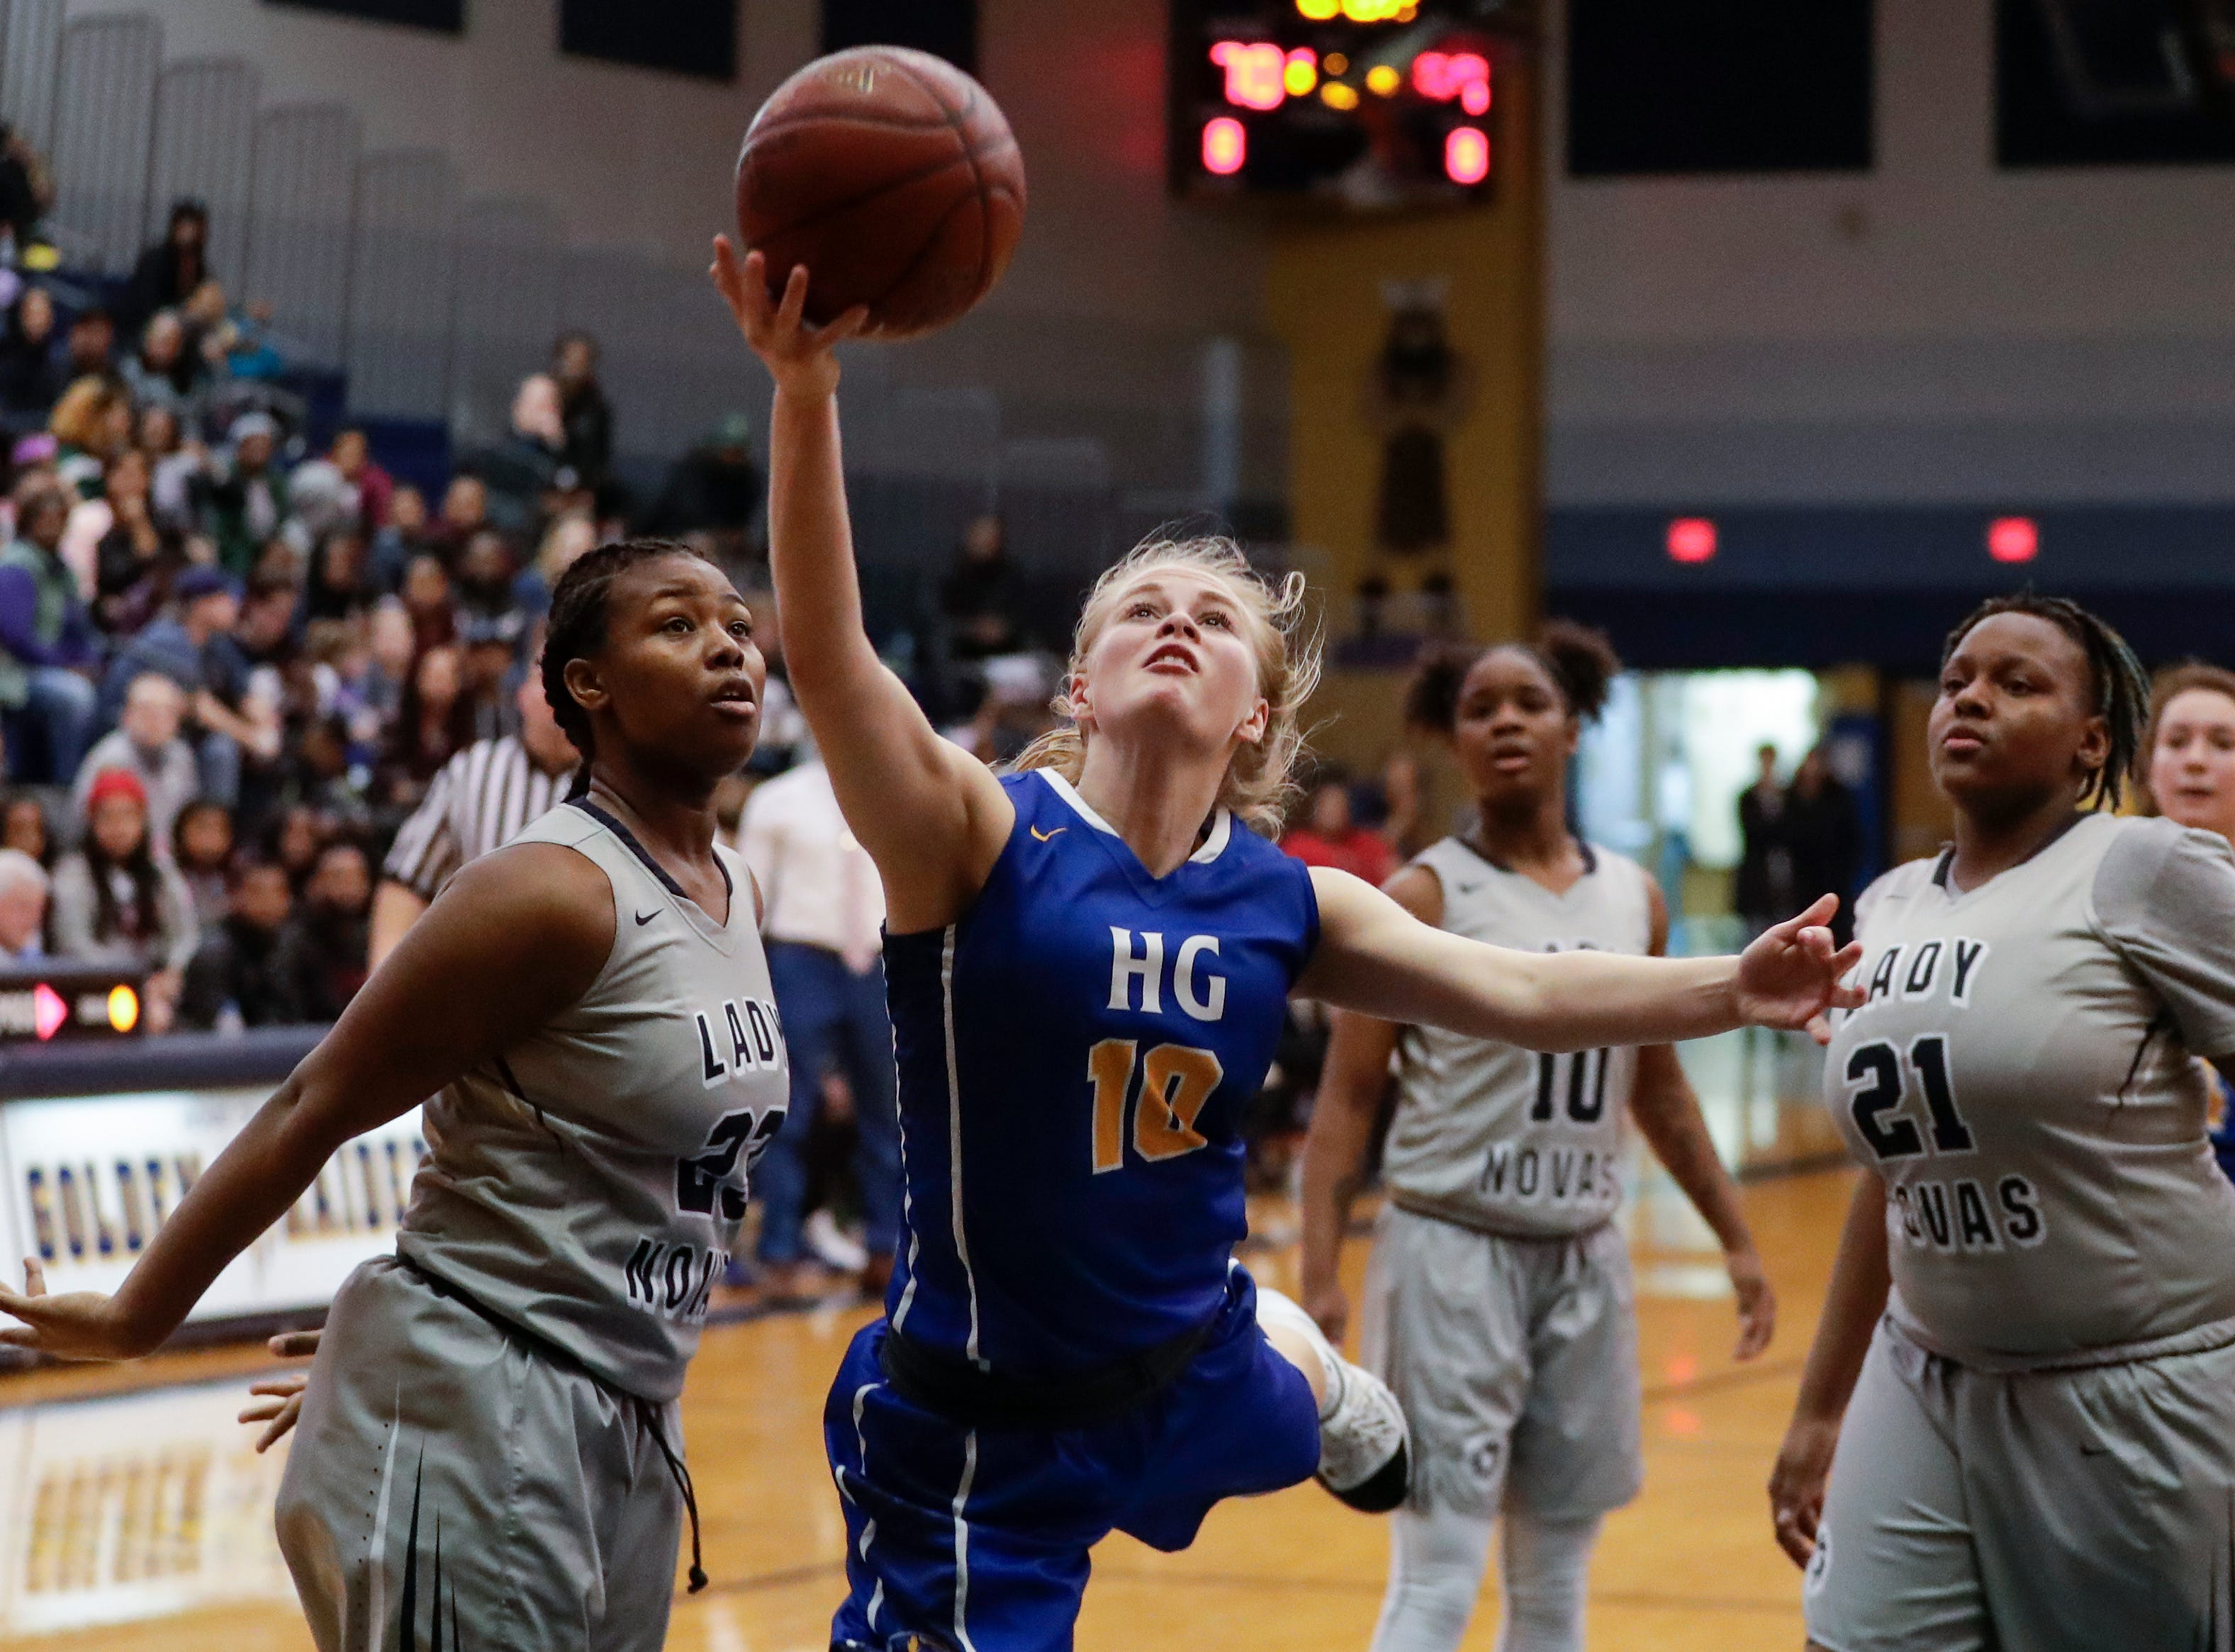 Howards Grove's Leah Parnitzke (10) shoots a layup against Milwaukee Academy of Science during a WIAA Division 4 sectional championship game at Sheboygan North High School Saturday, March 2, 2019, in Sheboygan, Wis. Joshua Clark/USA TODAY NETWORK-Wisconsin